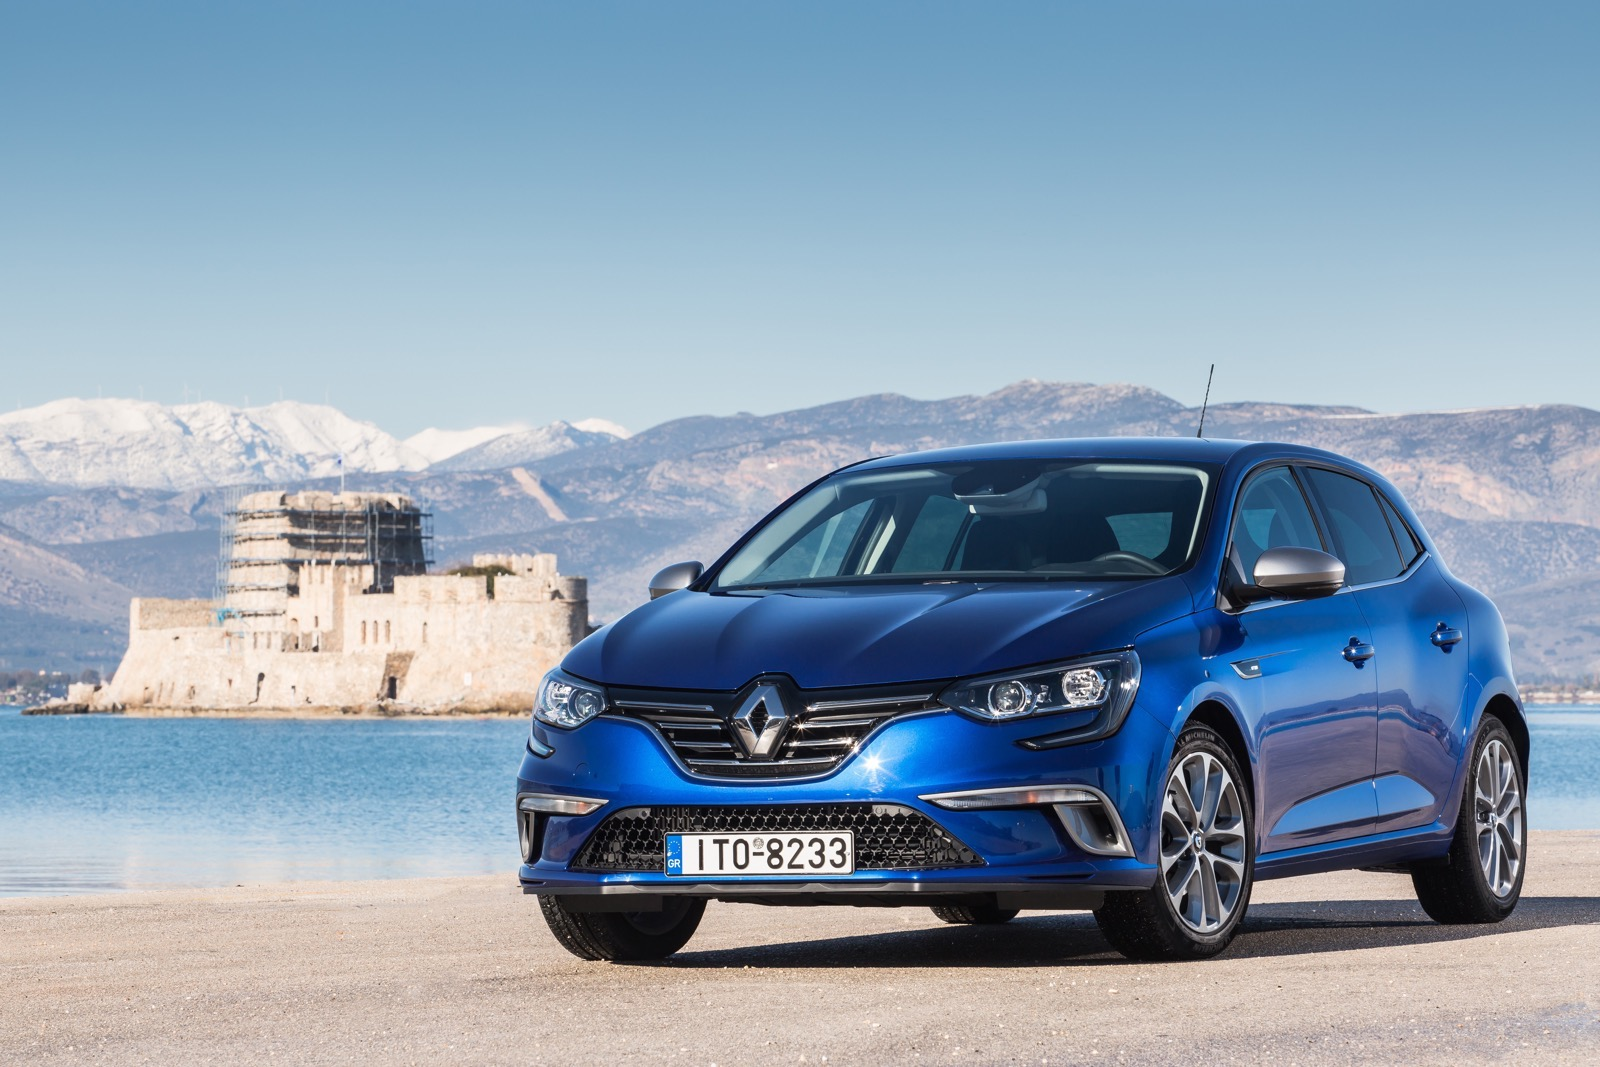 First_Drive_Renault_Megane_39